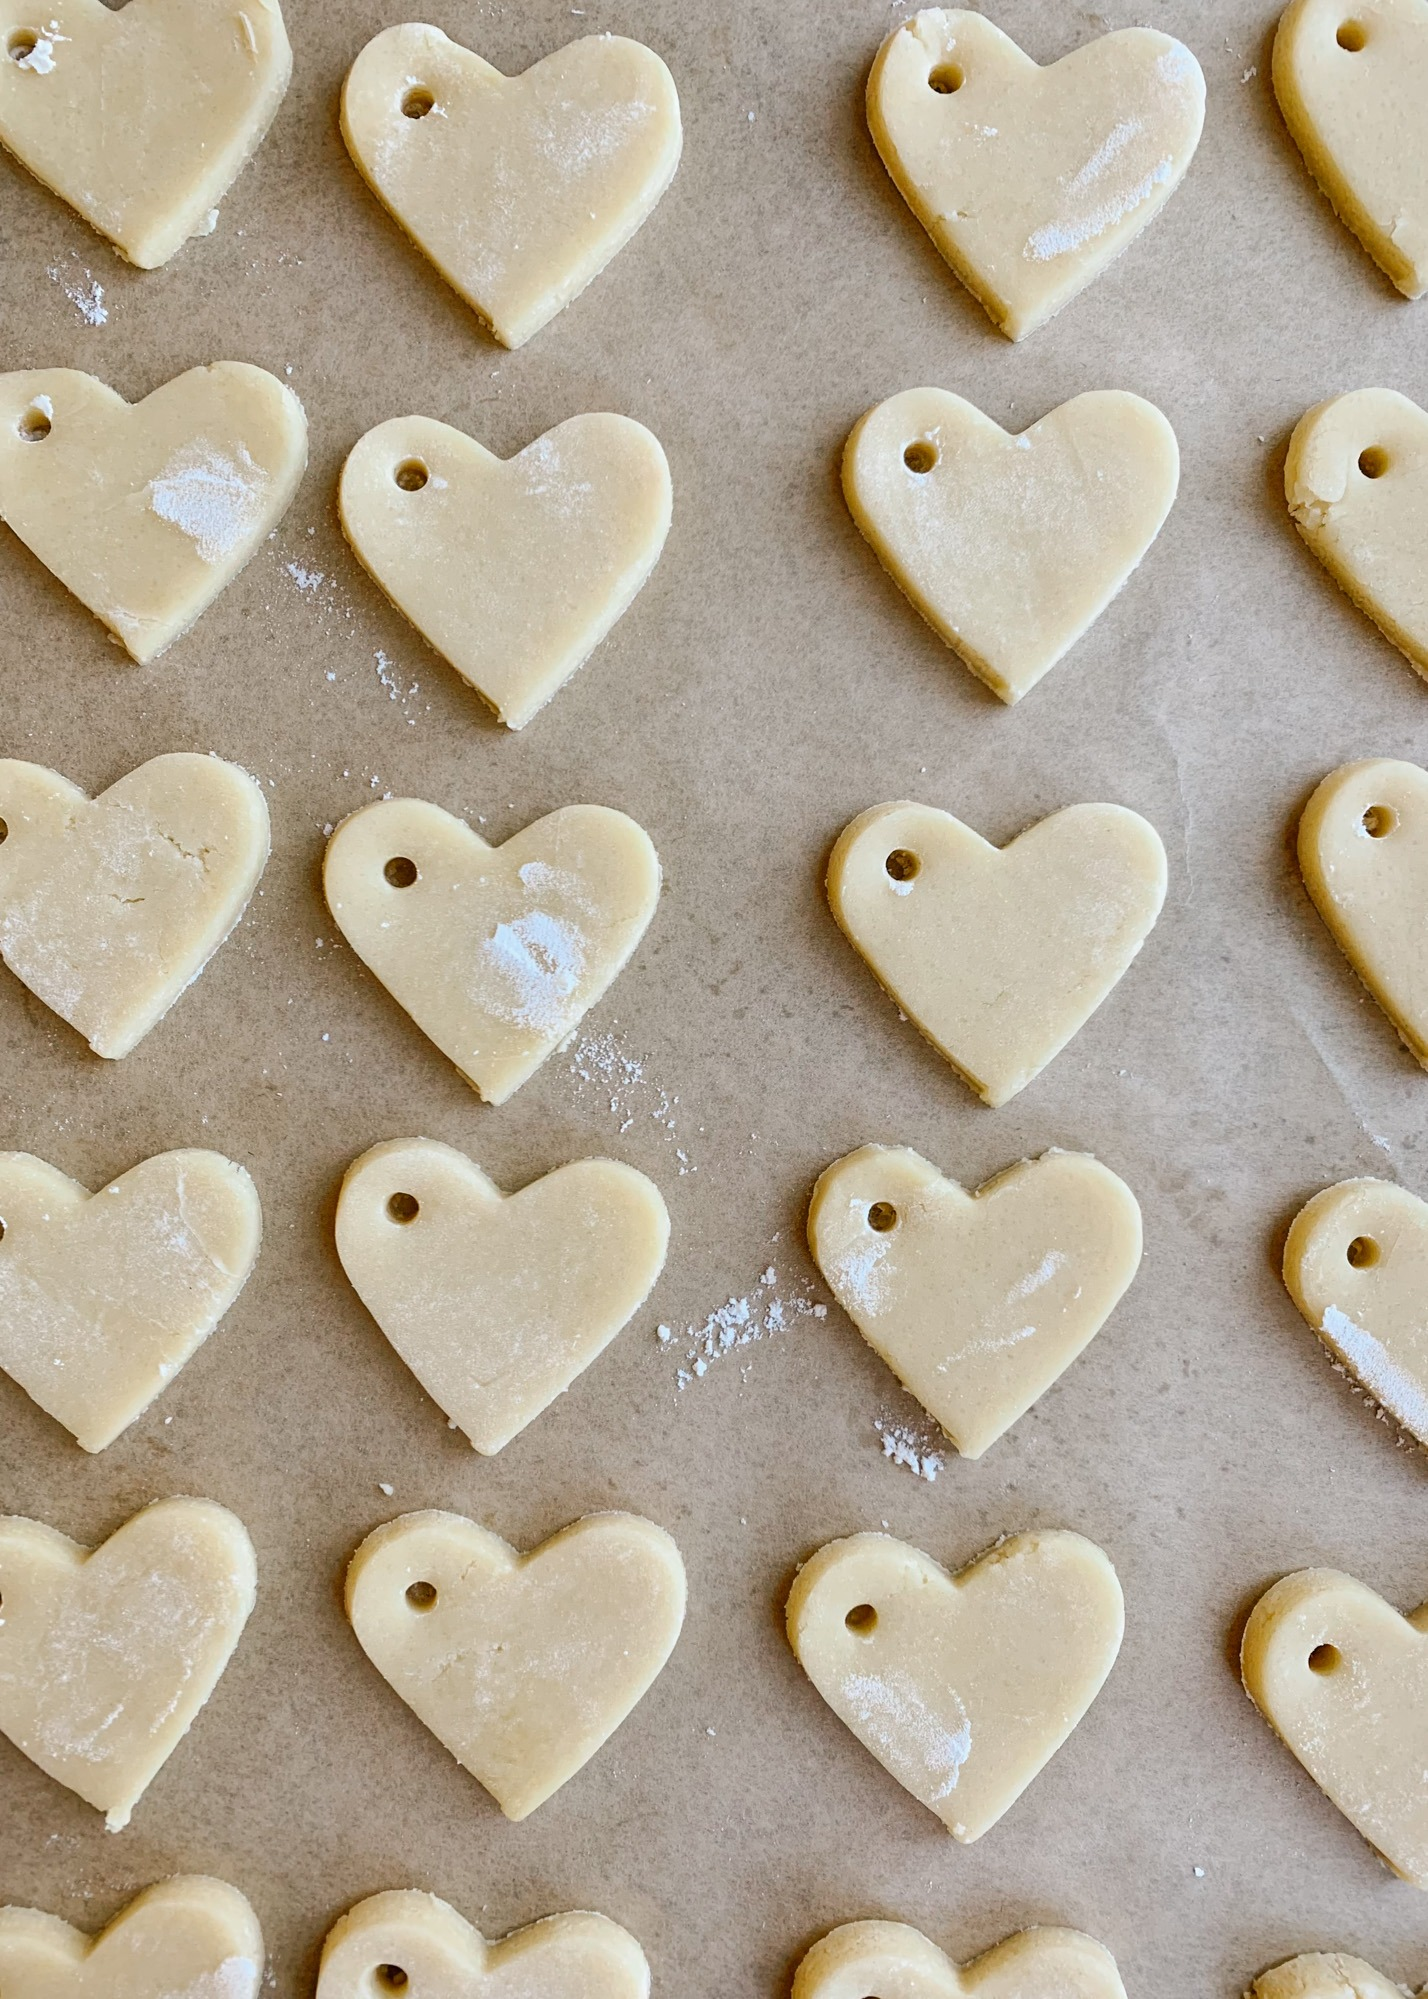 Sugar Cookie Gift Tags by Wood and Spoon blog. Use this tutorial to create, mini frosted iced heart sugar cookies to use as garland, napkin ring holders, gift tags, name tags, necklaces, and more. This simple tutorial gives you the DIY recipe for hard set cookies with homemade icing and ideas for how to use them for Valentine's Day parties, kid crafts, and more. Read about the recipe and how to on thewoodandspoon.com by Kate Wood